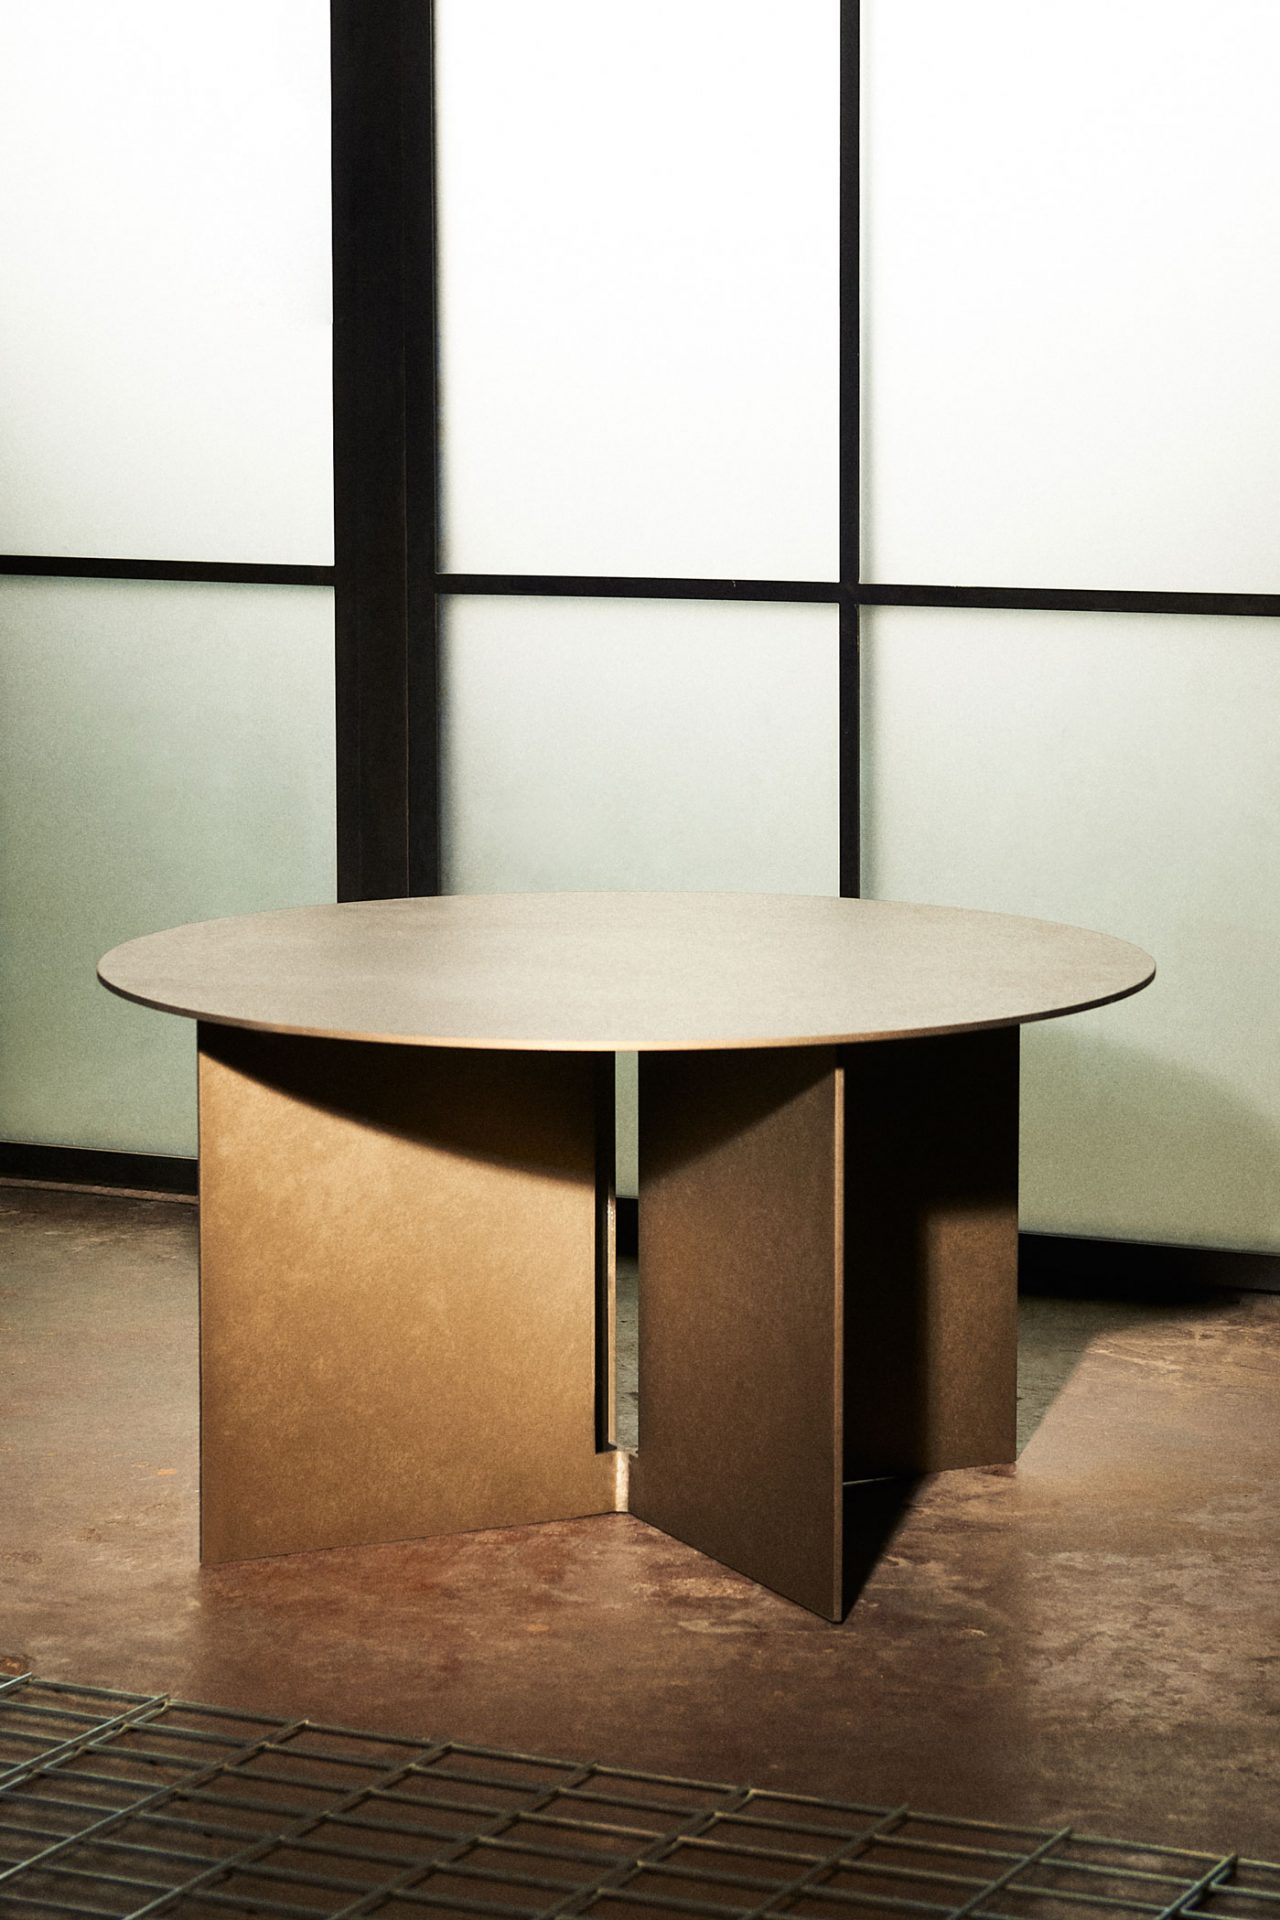 mers-coffee-table-2